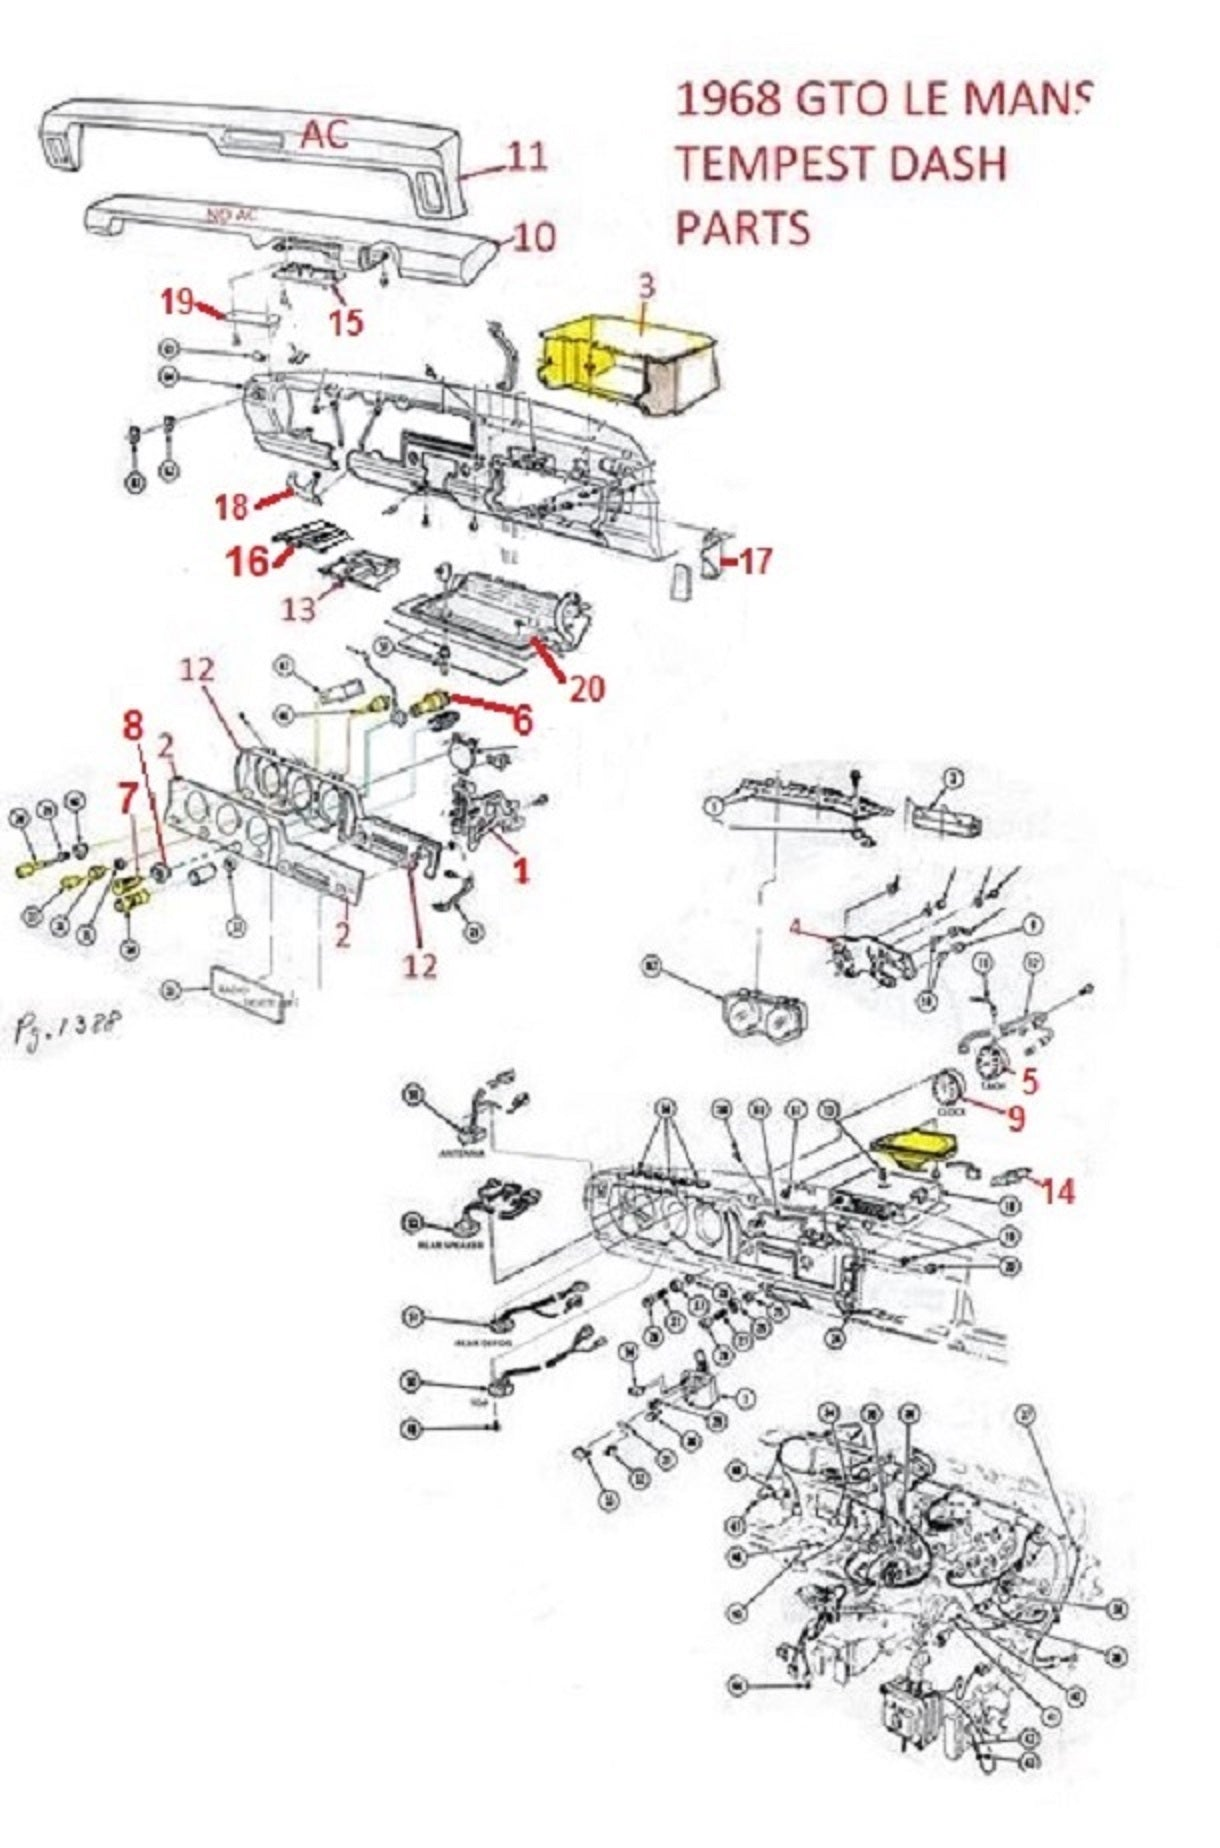 1968 GTO LEMANS TEMPEST DASH PARTS – Chicago Muscle Car ... Ignition Switch Wiring Diagram For Gto on 1968 corvette ignition switch, 1965 impala ignition switch, 1969 firebird ignition switch, 1969 gto ignition switch, 1967 chevelle ignition switch, 1970 chevelle ignition switch, 1967 gto ignition switch,